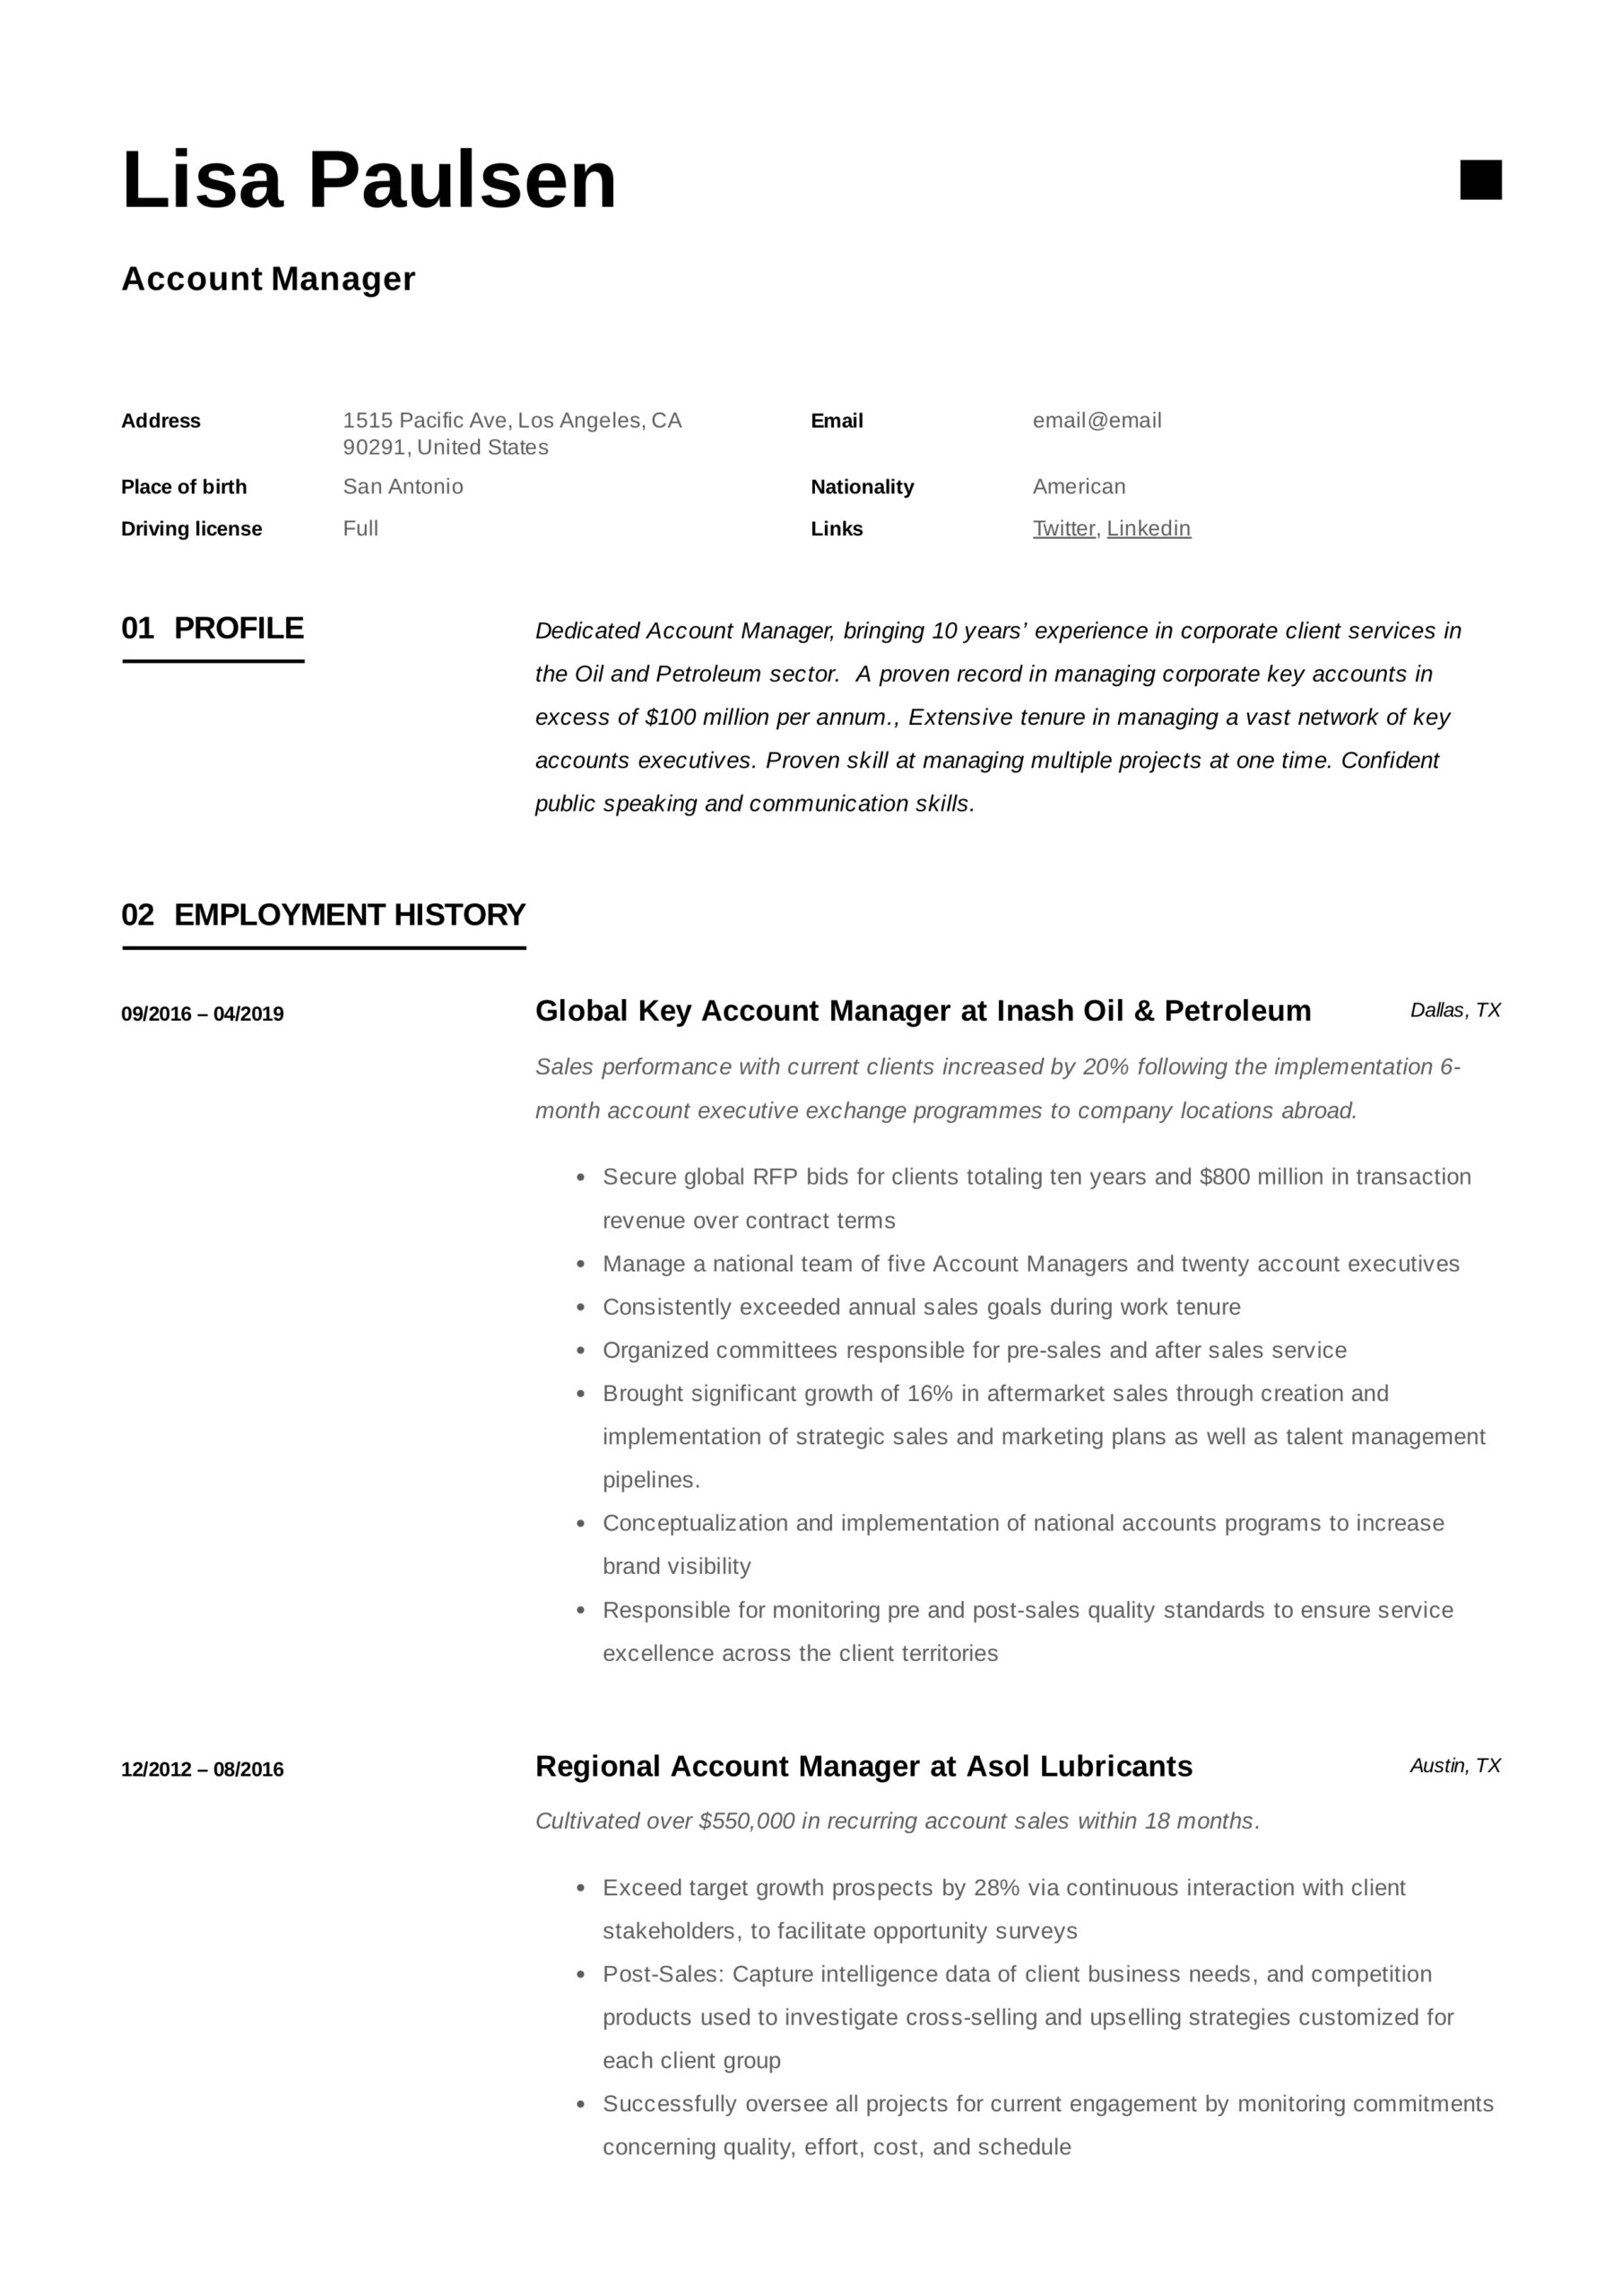 account manager resume writing guide examples keywords lisa paulsen summary statement Resume Account Manager Resume Keywords